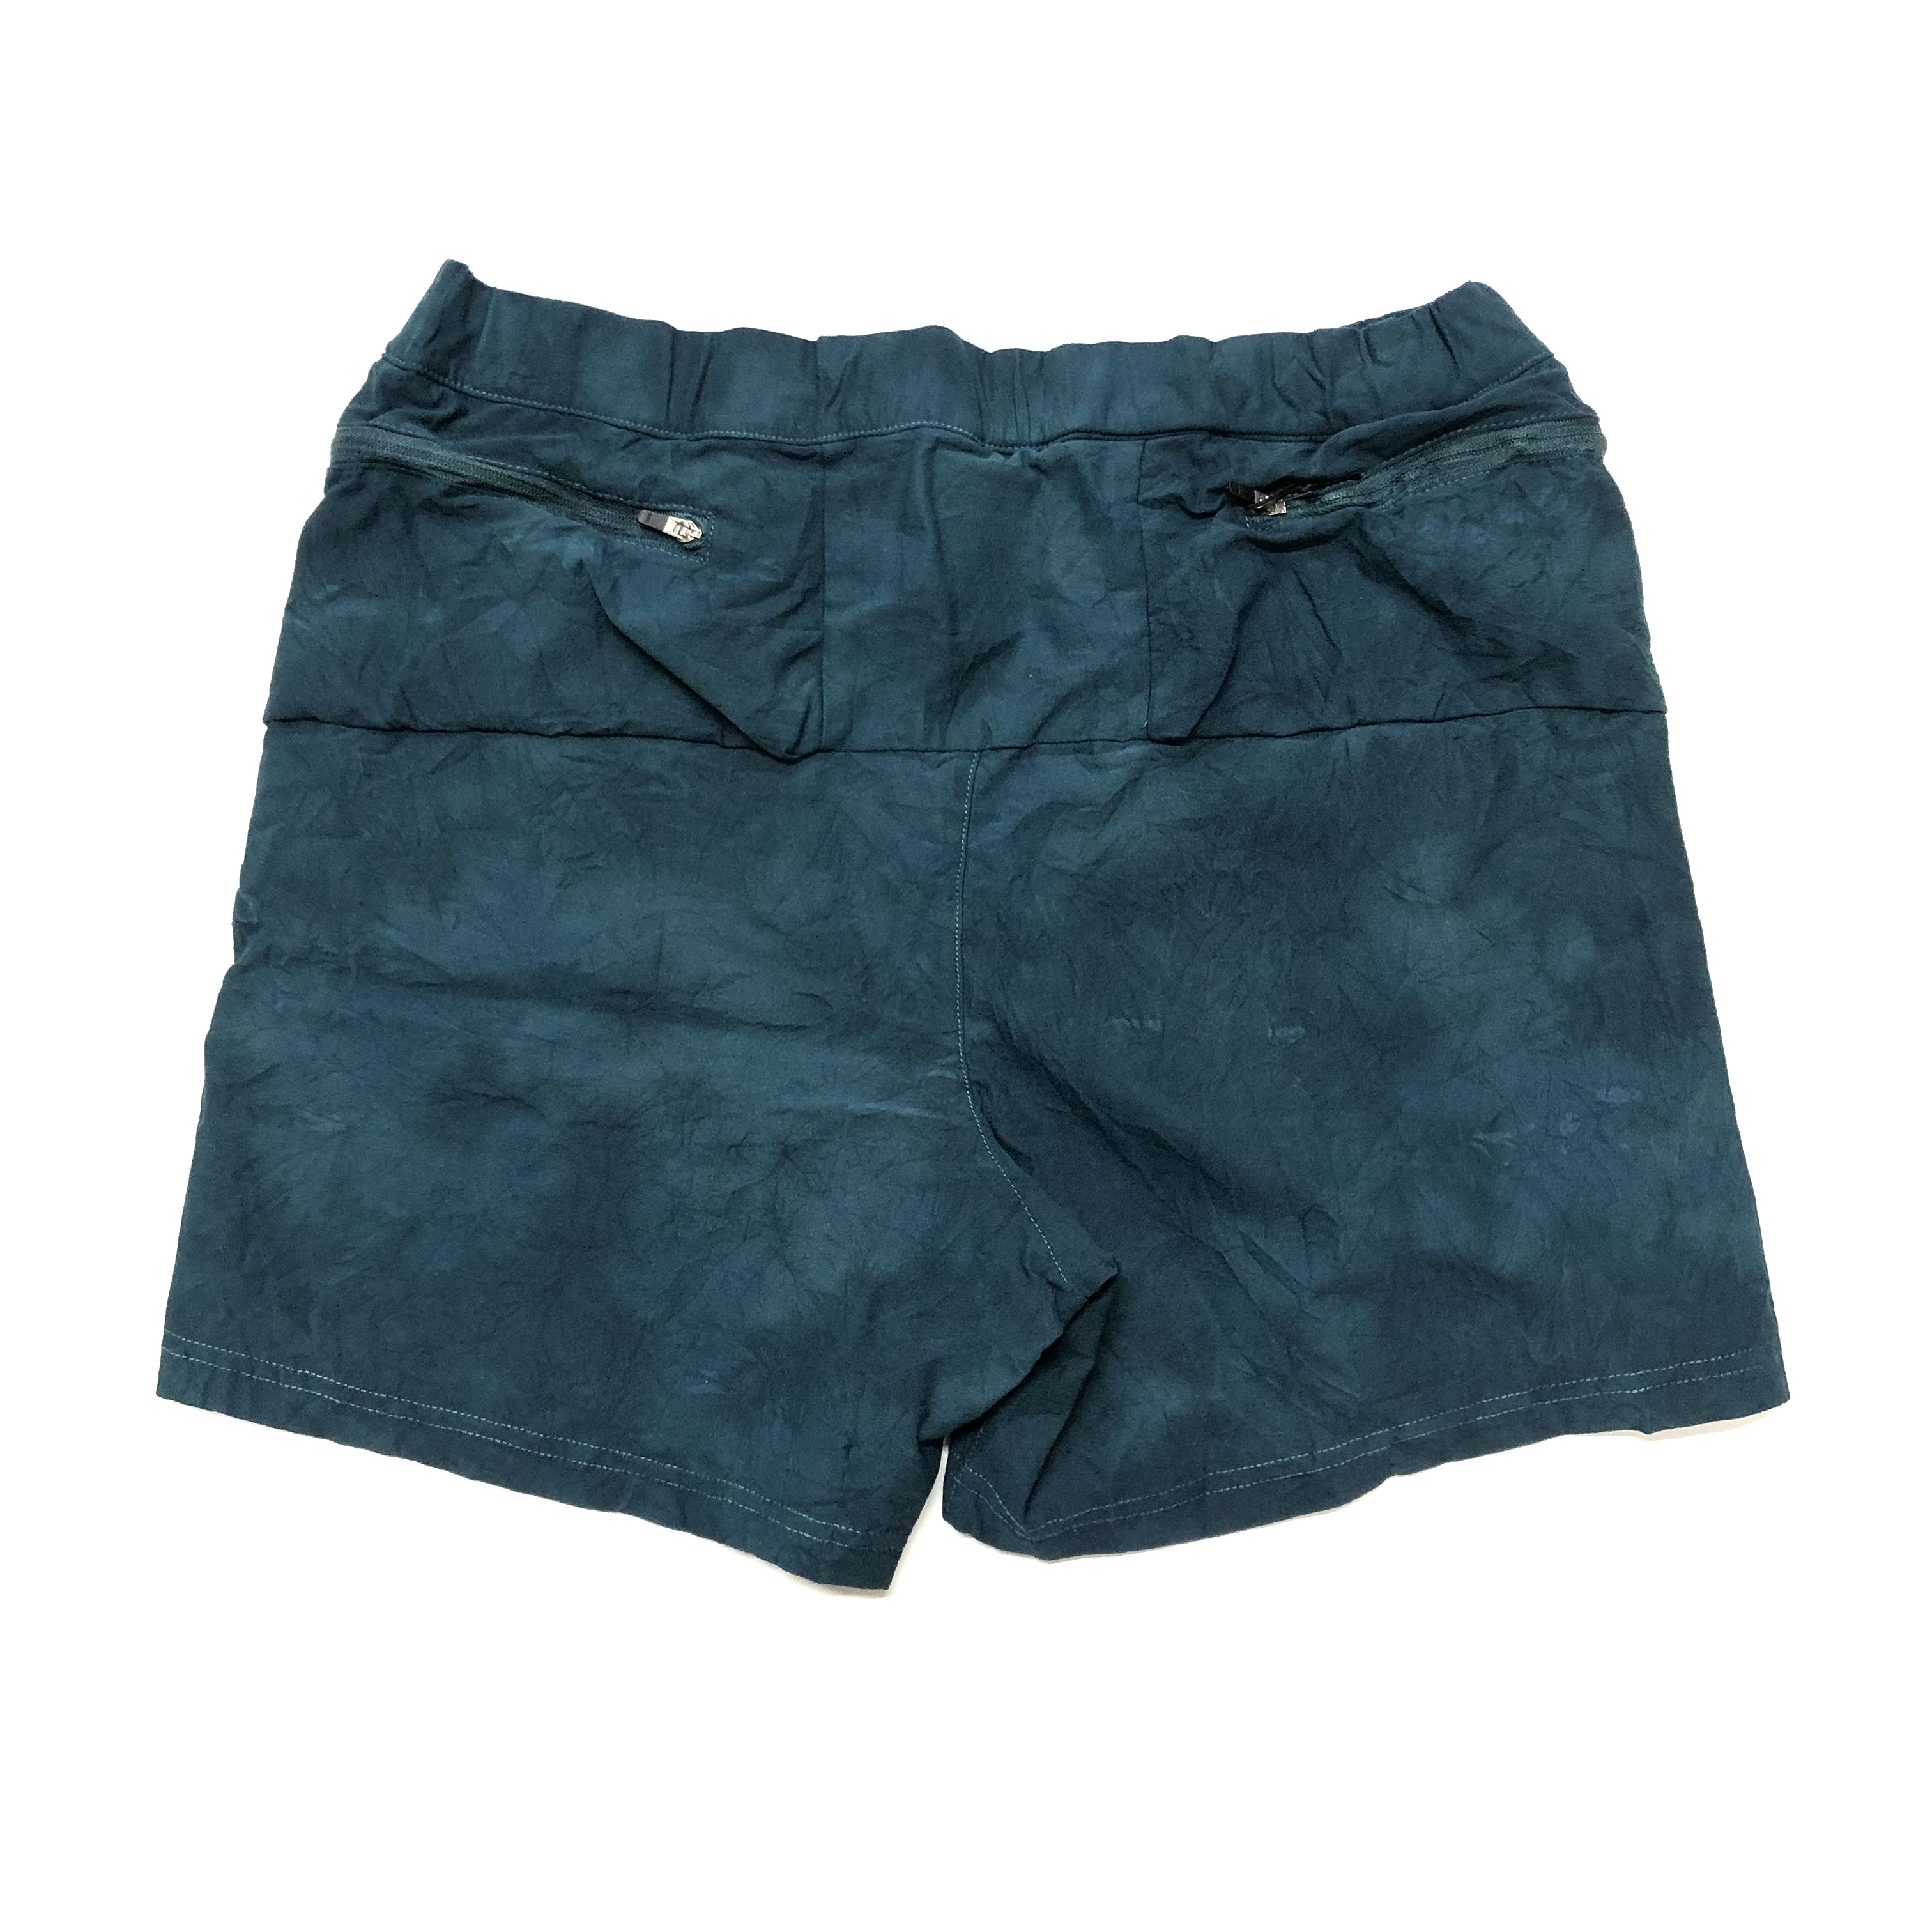 ranor / TIE DYEING MIDDLE SHORTS 《Greenblue》